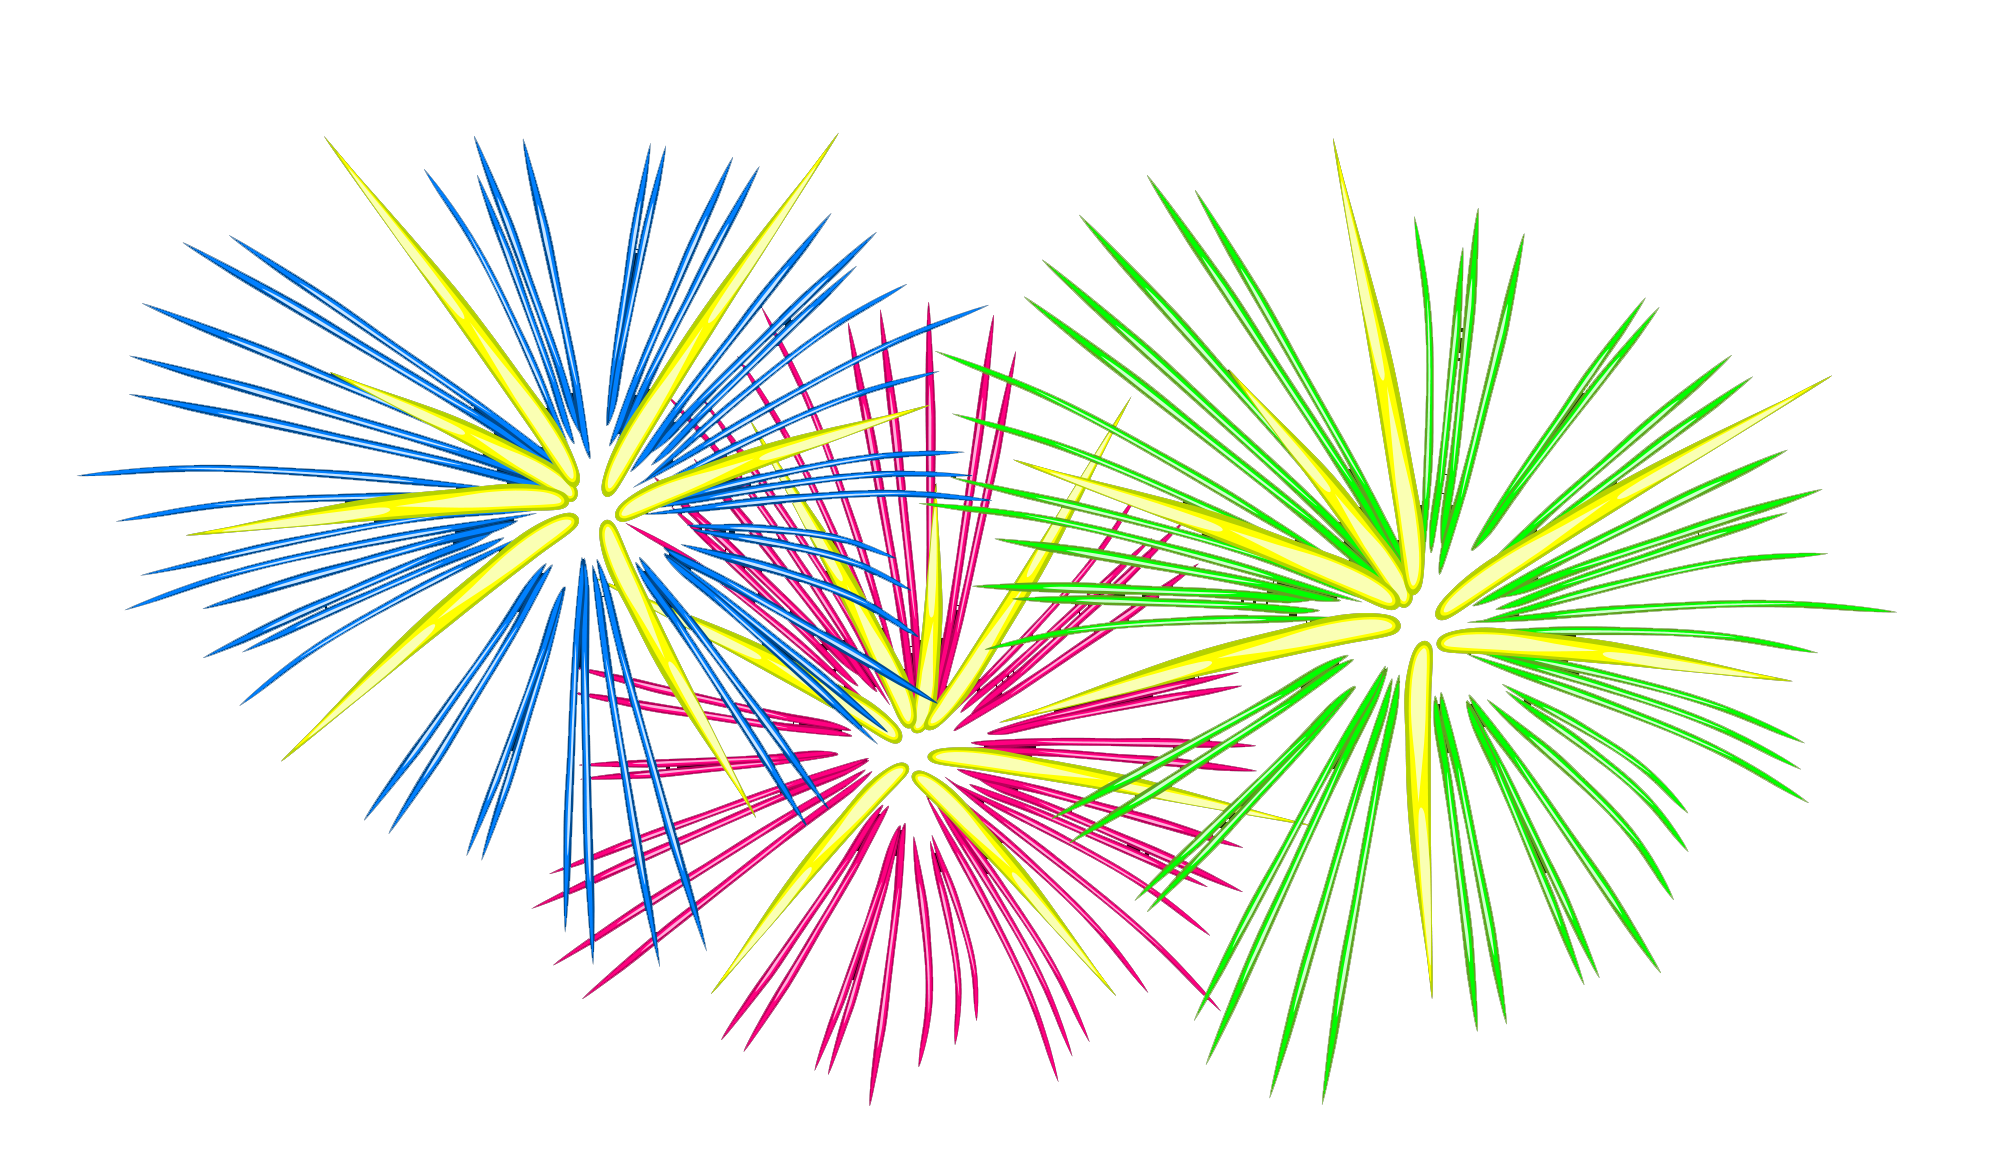 Description Fireworks 2 Png-Description Fireworks 2 Png-5